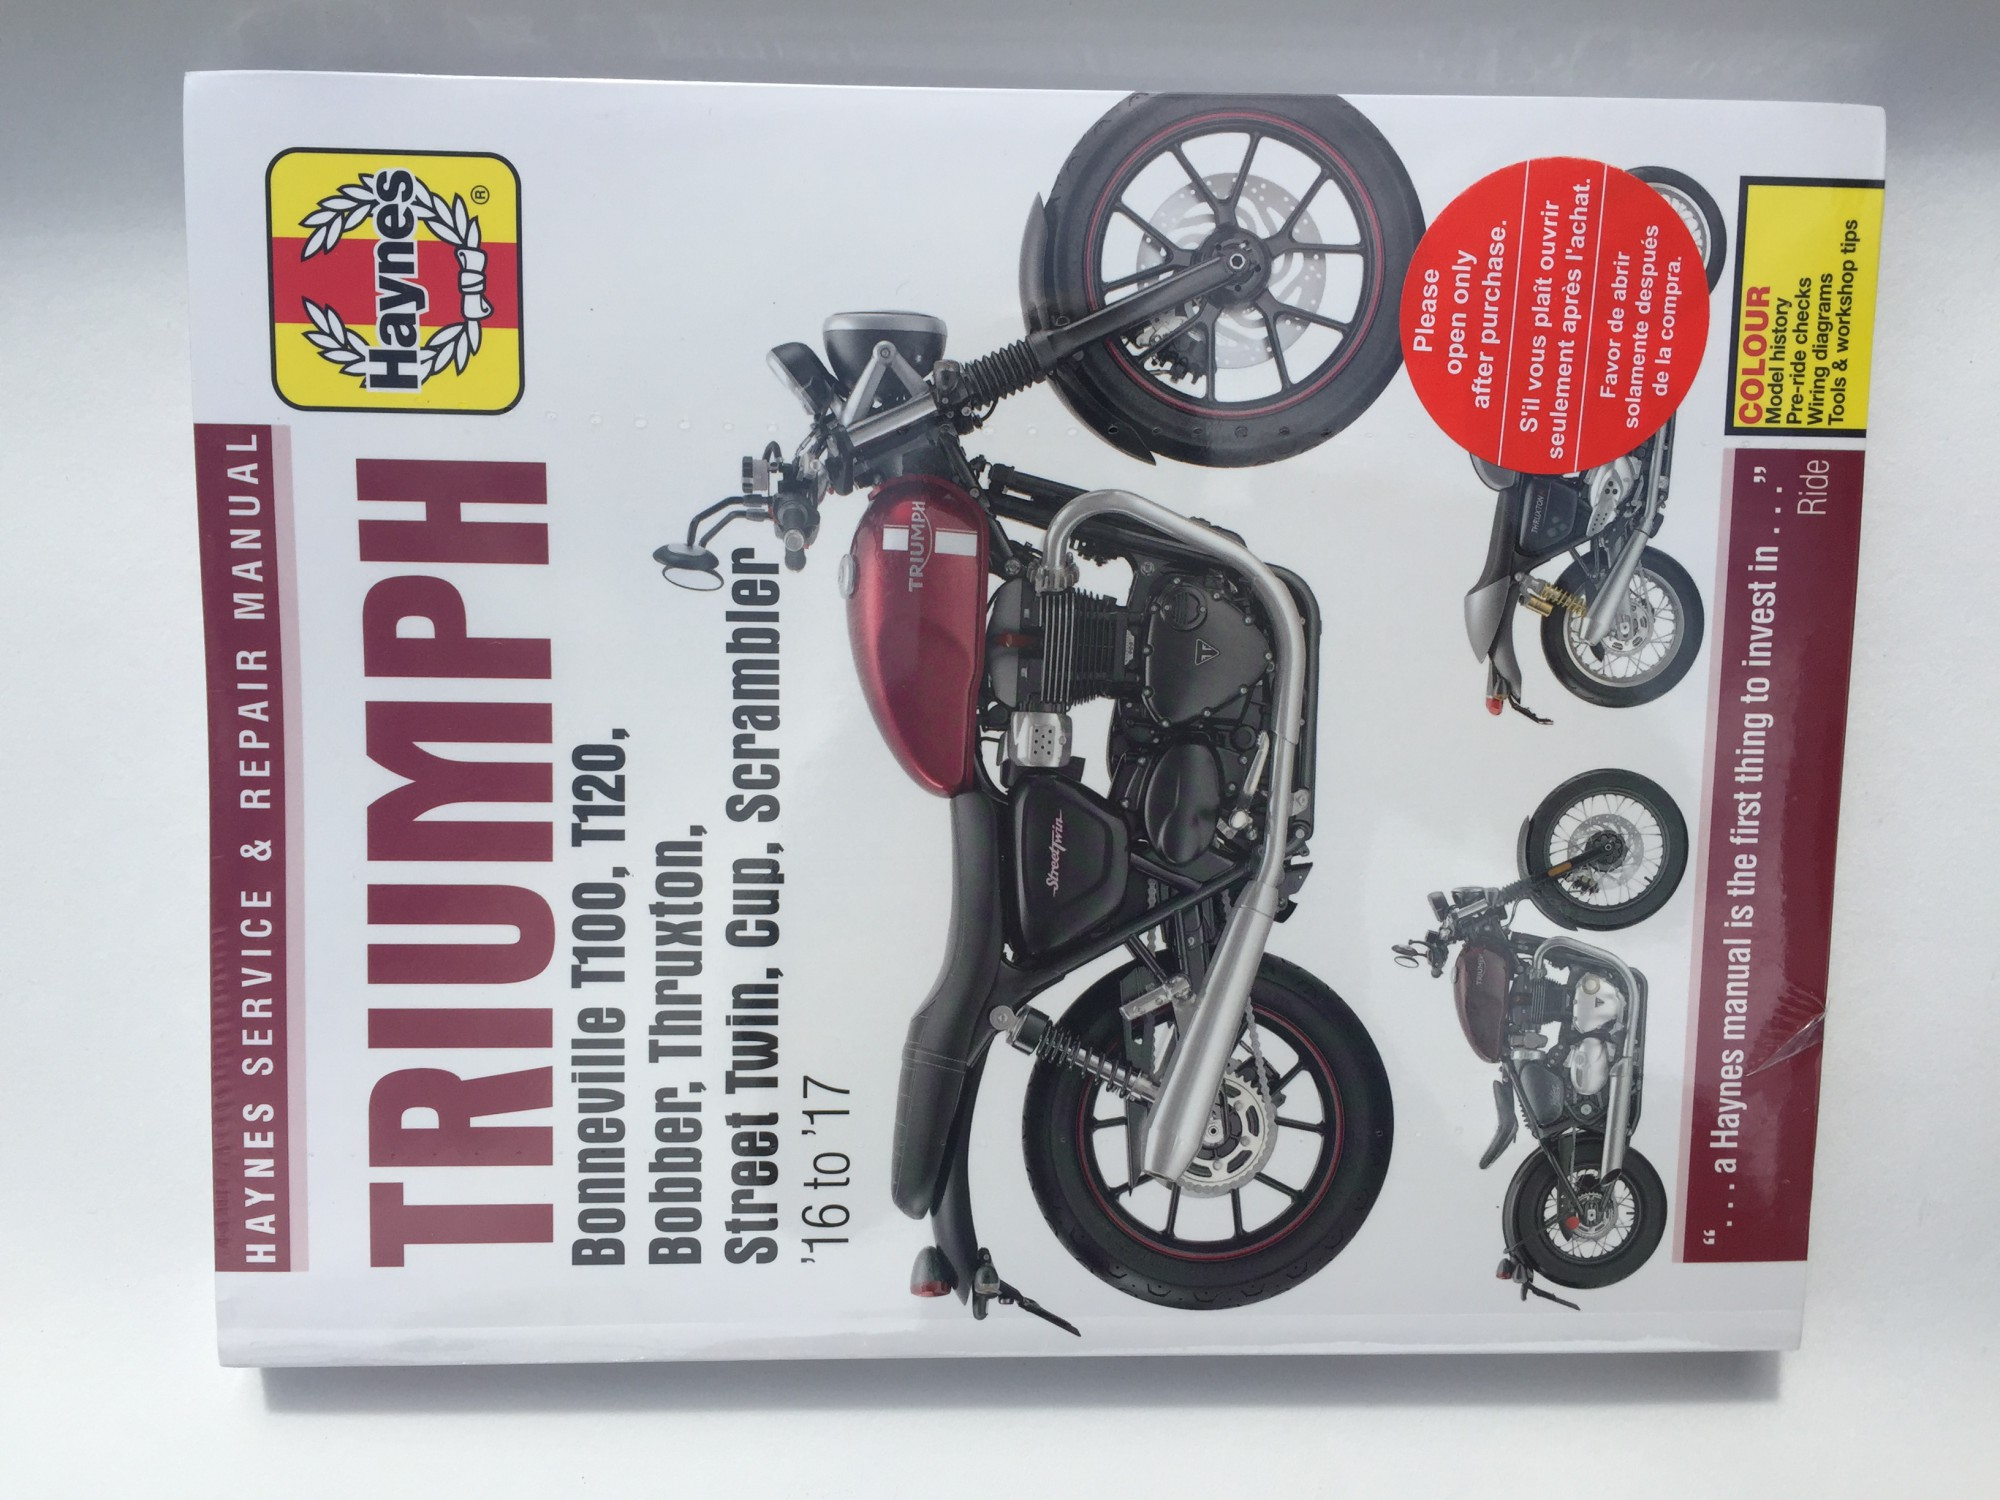 Haynes Repair Manual Bonneville Water Cooled T100 T120 Bobber Wiring Diagram Street Twin Triumph All Parts Stocked Sprint Manufacturing Ltd